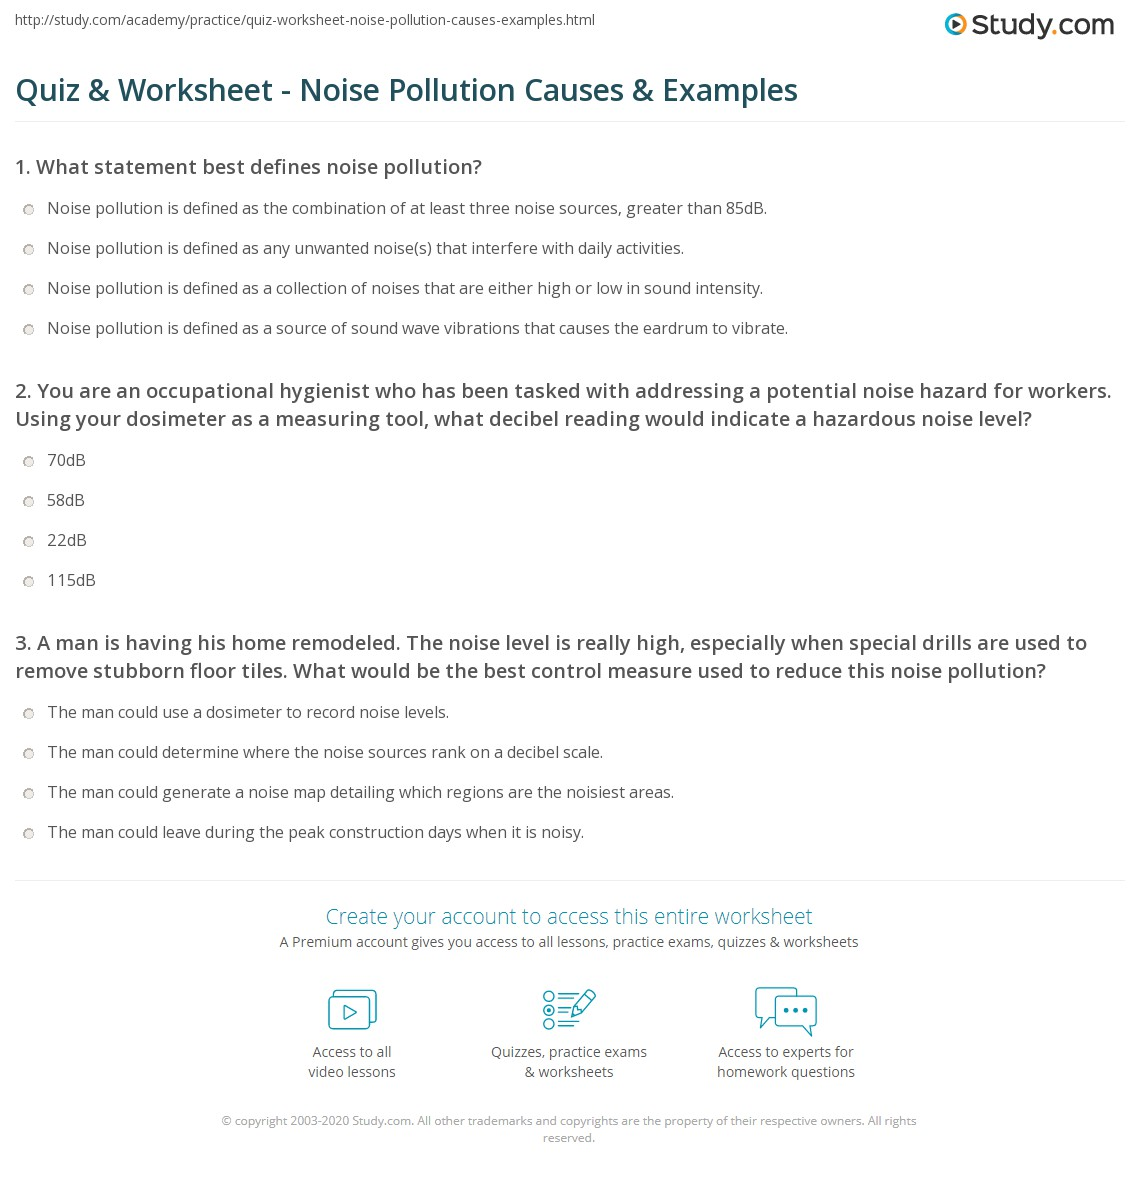 Quiz Worksheet Noise Pollution Causes Examples